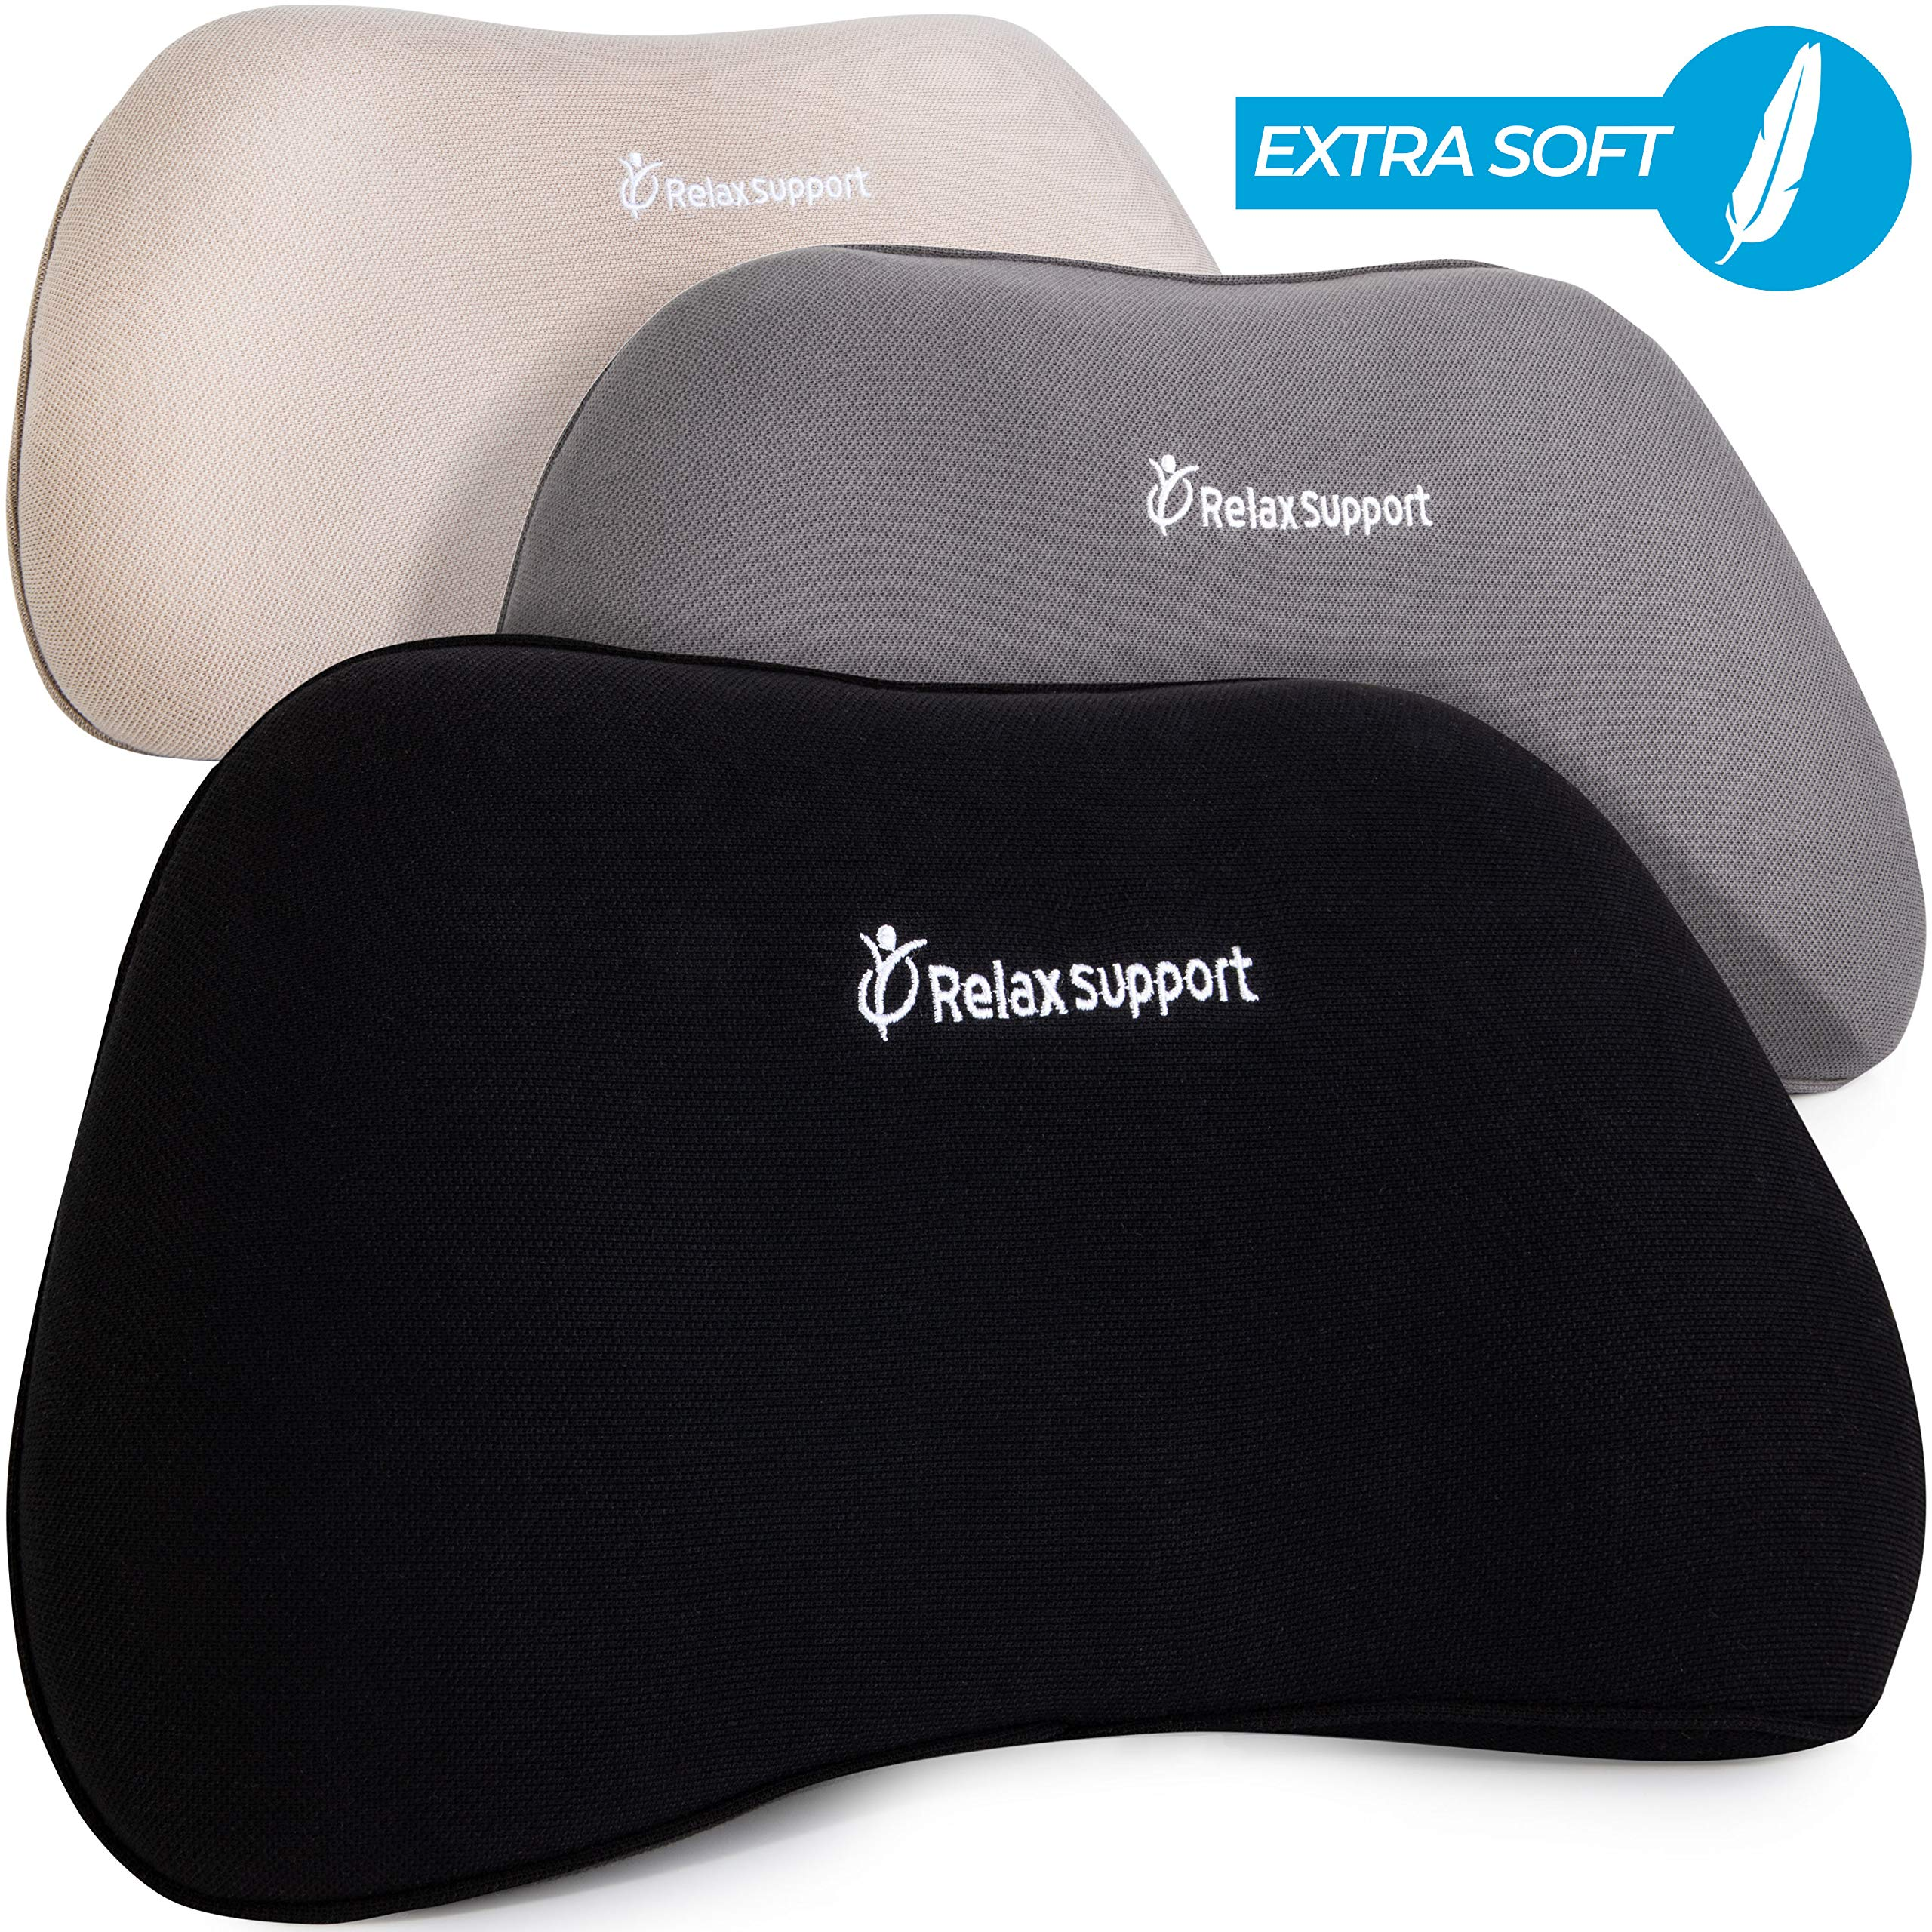 Soft RS1 Back Support Pillow by RelaxSupport - Lumbar Pillow Upper and Lower Back for Chair Back Pain Uses ArcContour Special Patented Technology Has Unique Lateral Convex Shape for a Pain Free Back by RELAX SUPPORT